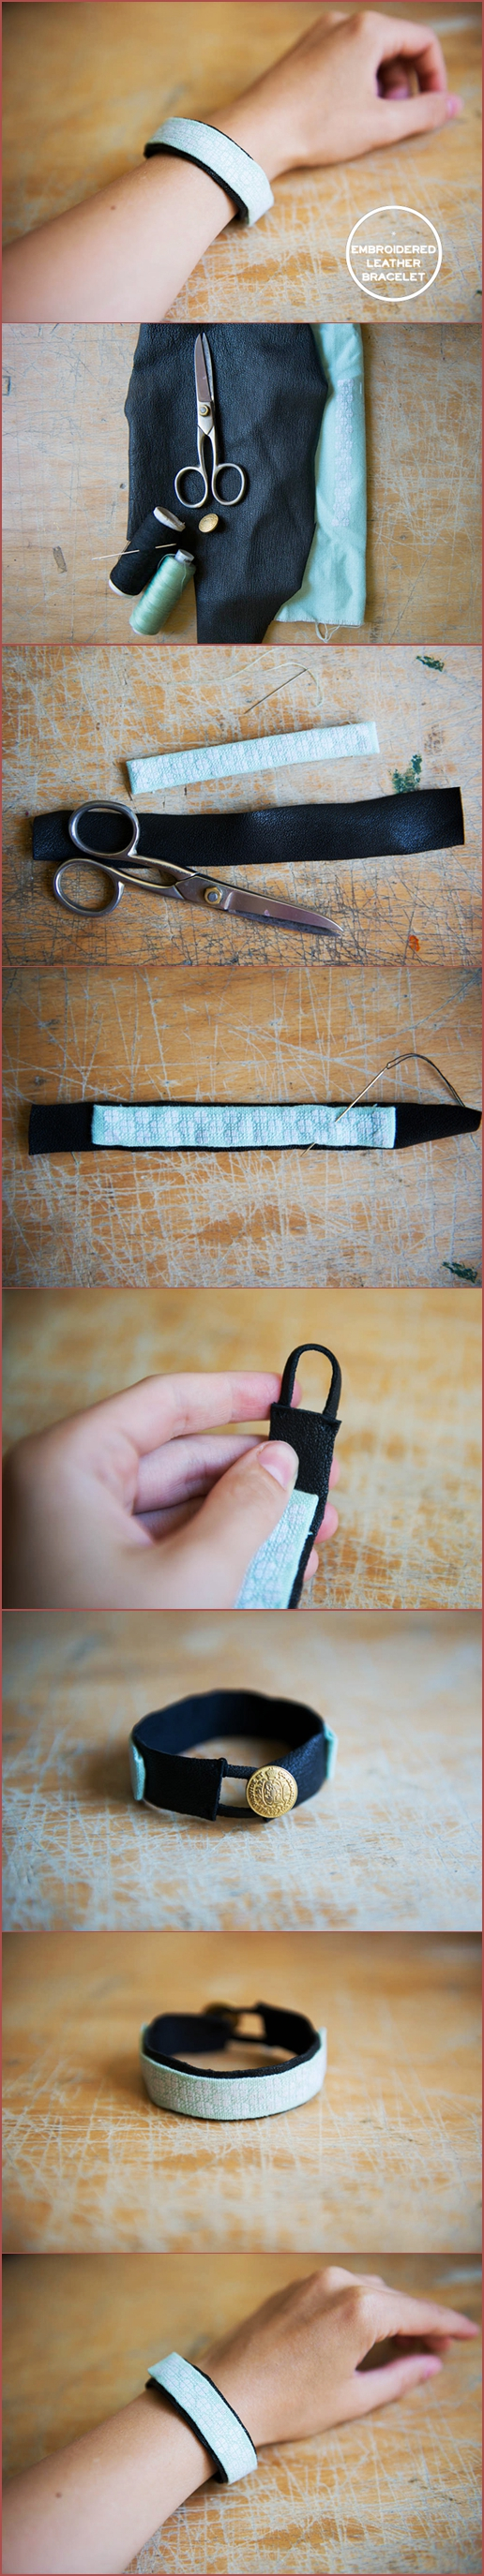 DIY: EMBROIDERY LEATHER BRACELET